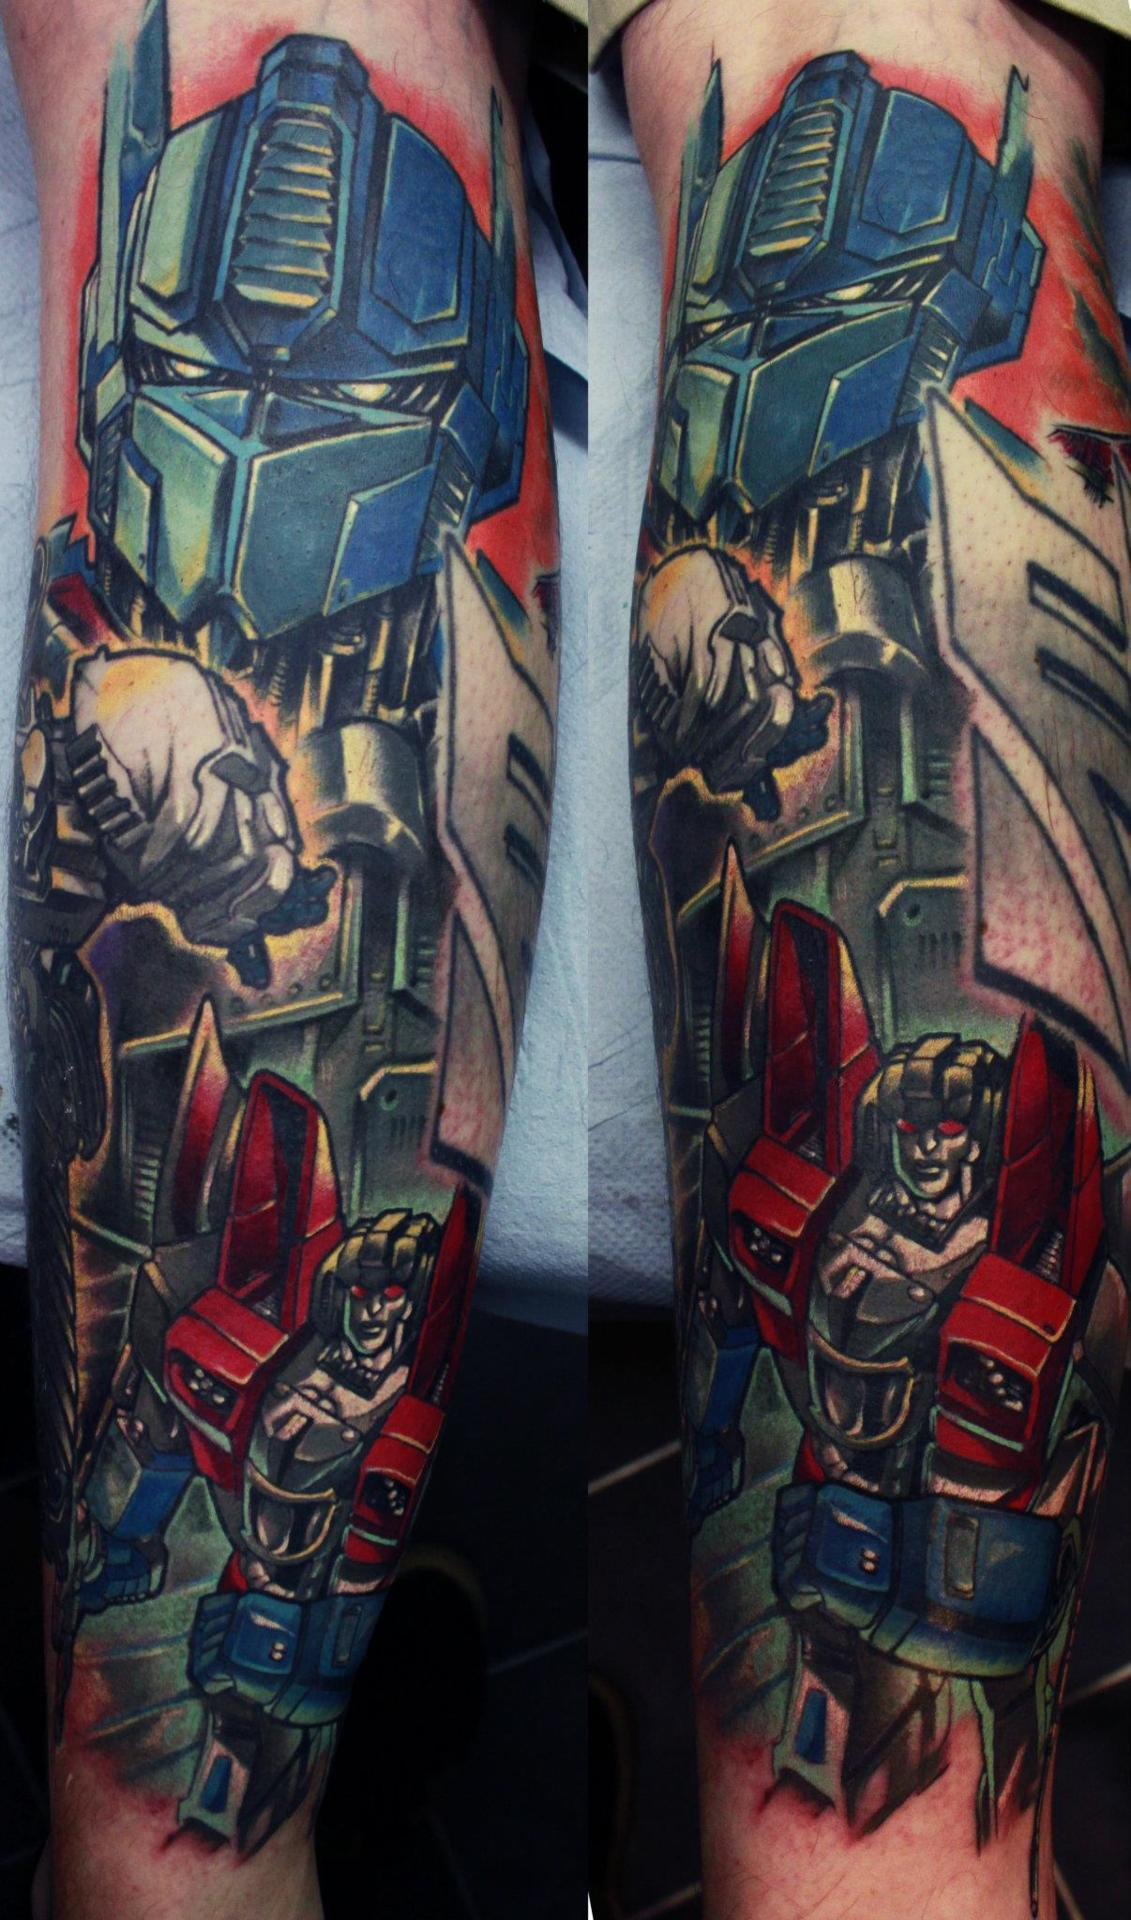 Transformers Tattoo Done By Edgar Ivanov At Old Ideas And Designs